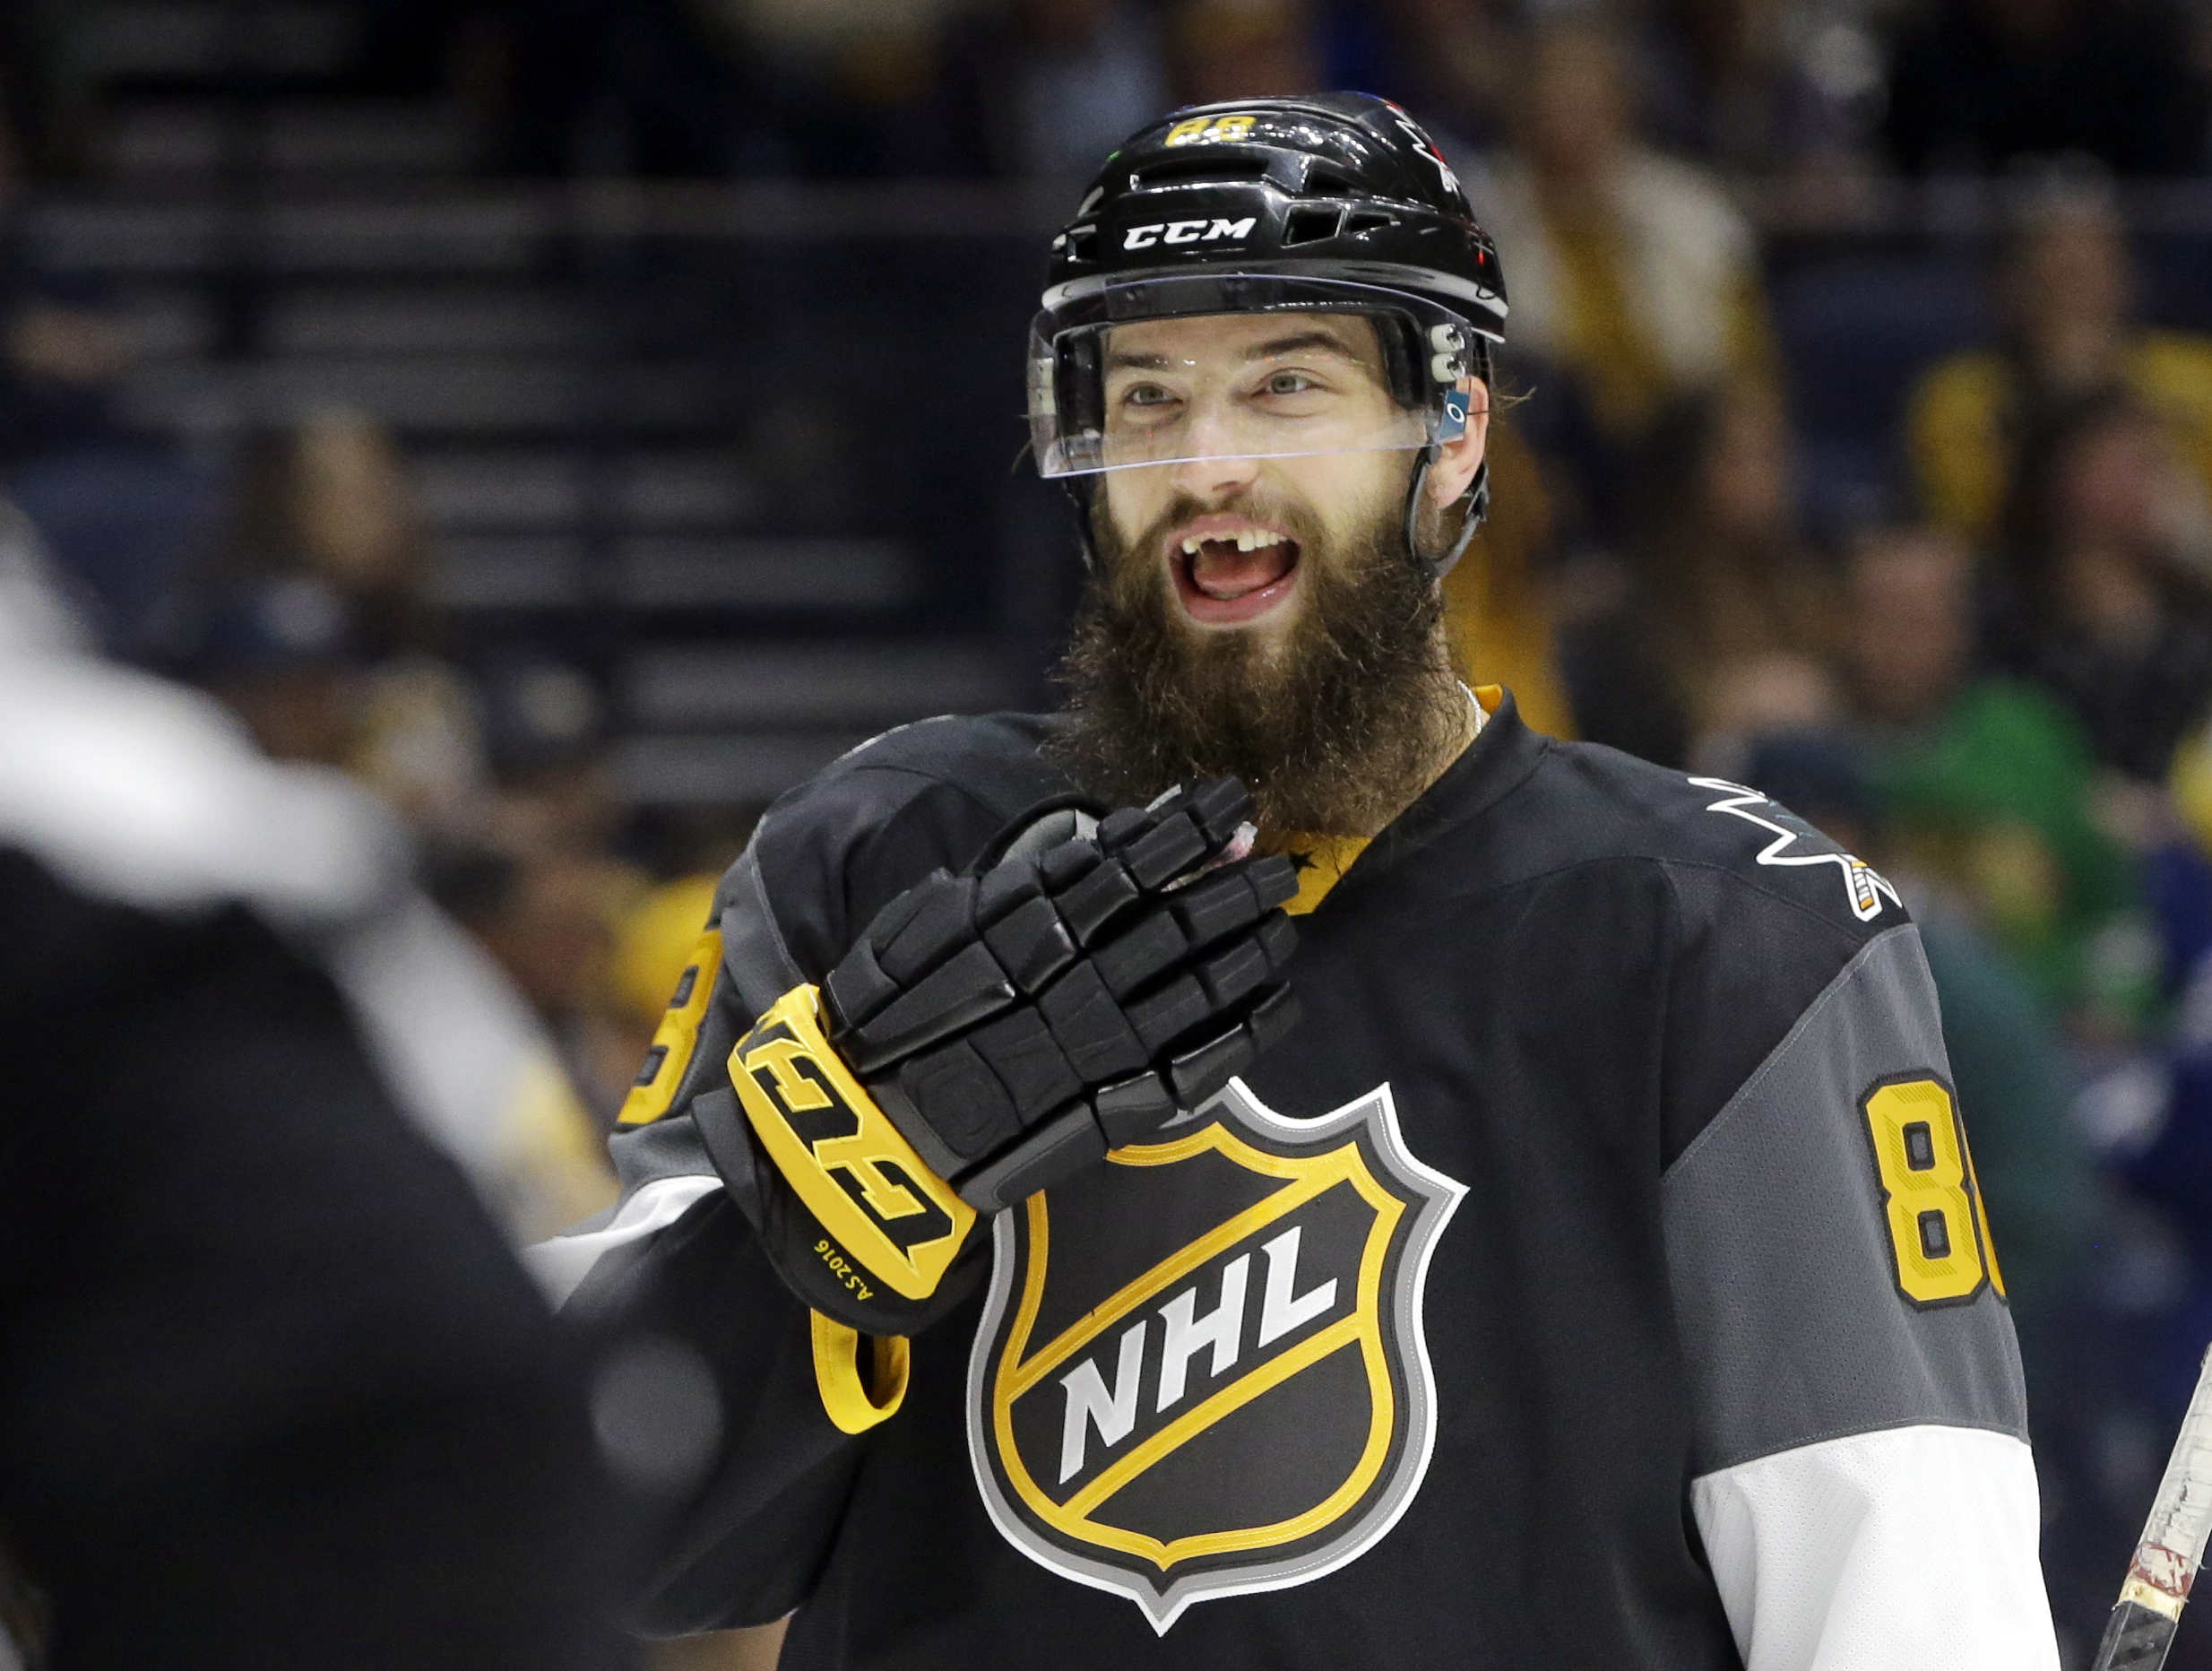 grin and bear it nhl players say losing teeth part of game game